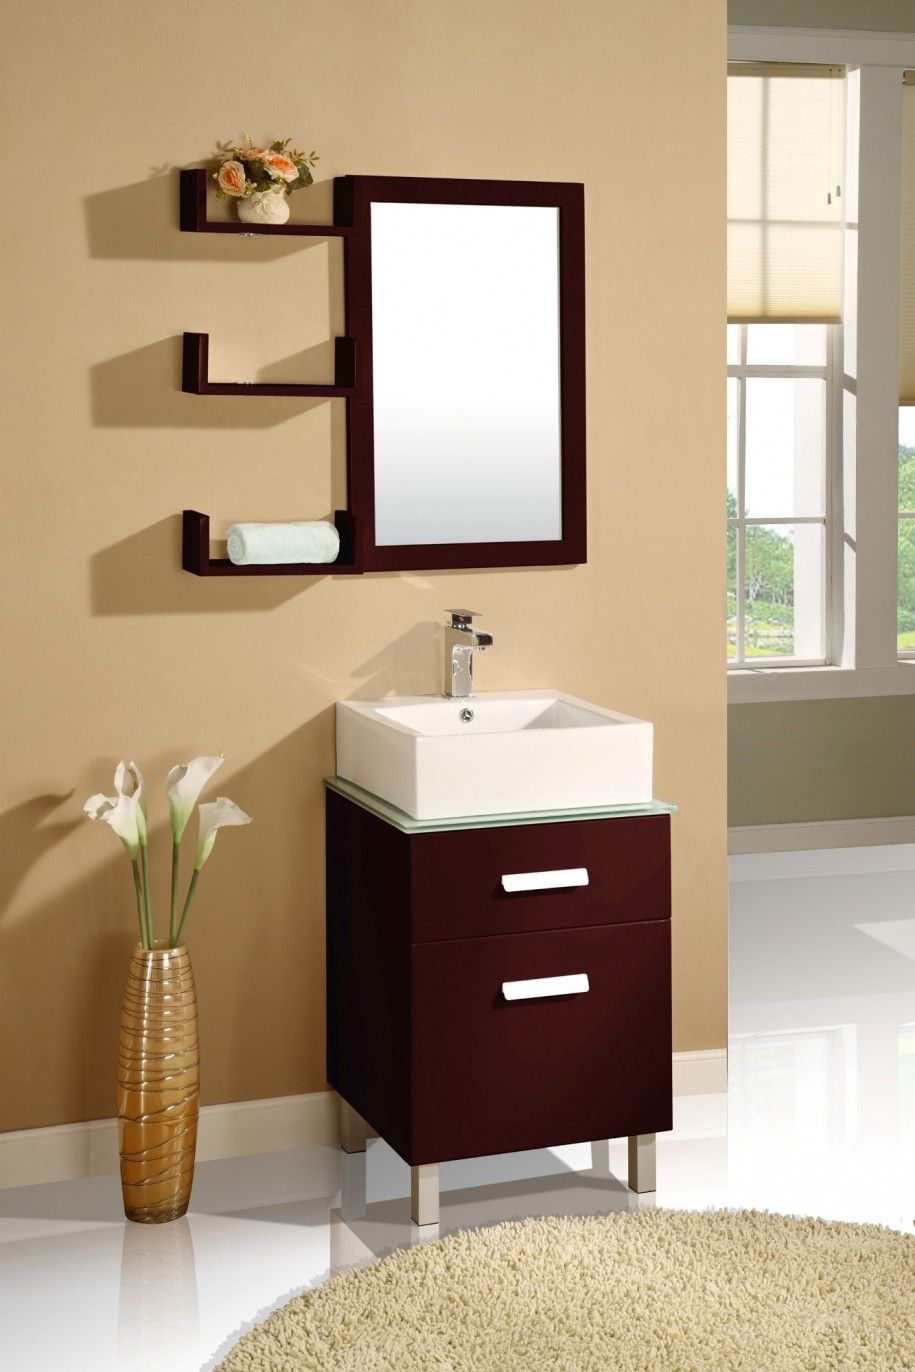 Simple dark wood bathroom mirrors with shelves and small dark wood vanity cabinet and white wash Bathroom mirror cabinet design